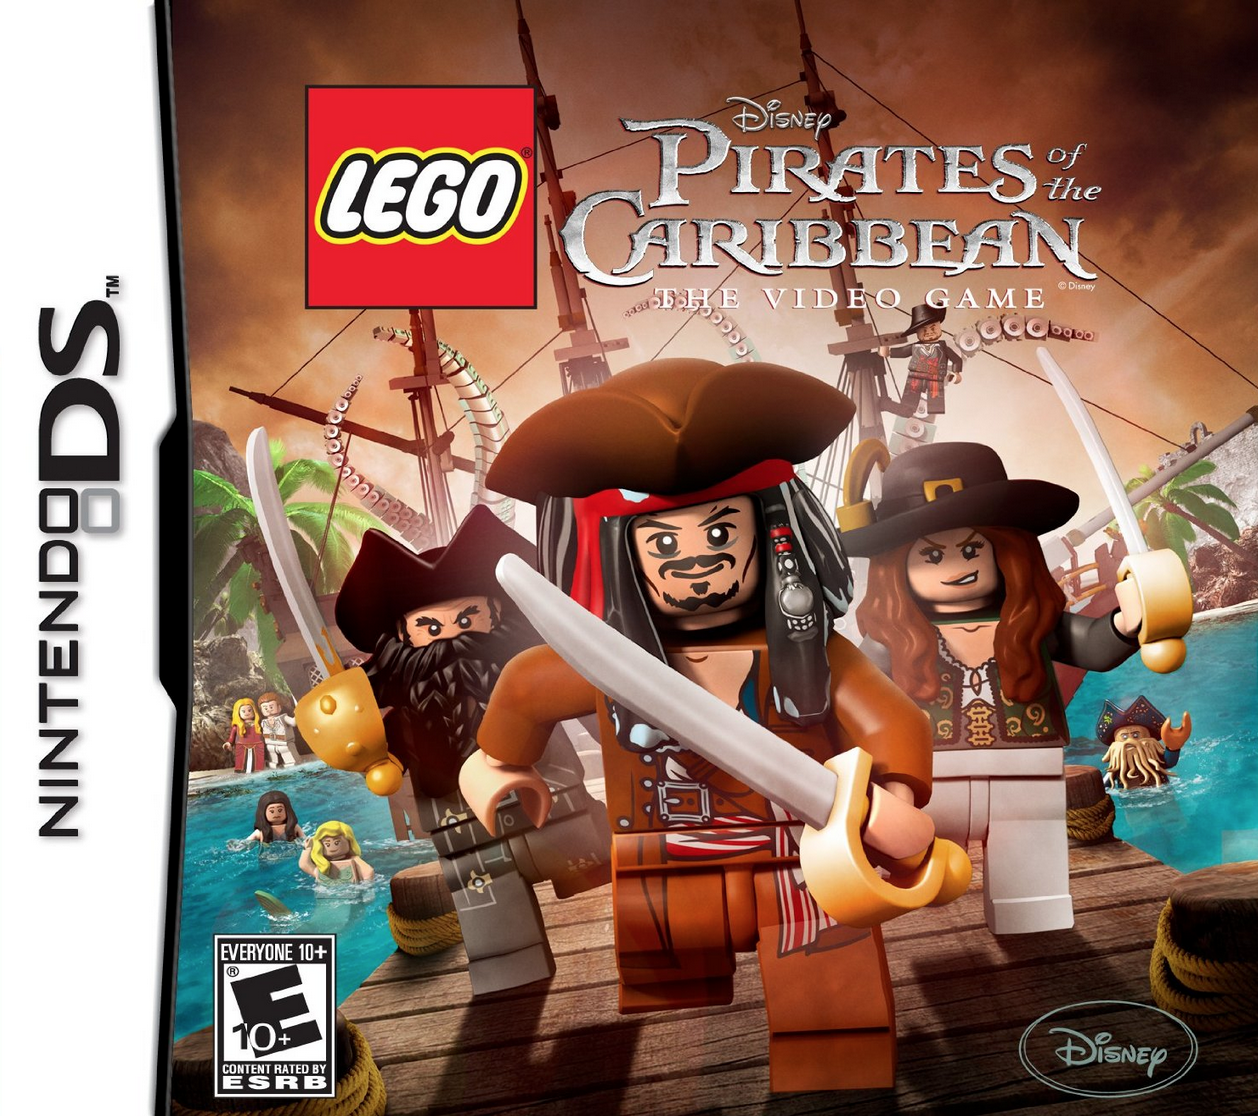 LEGO Pirates of the Caribbean – Nintendo DS Only $7.99 (Reg. $19.99!)